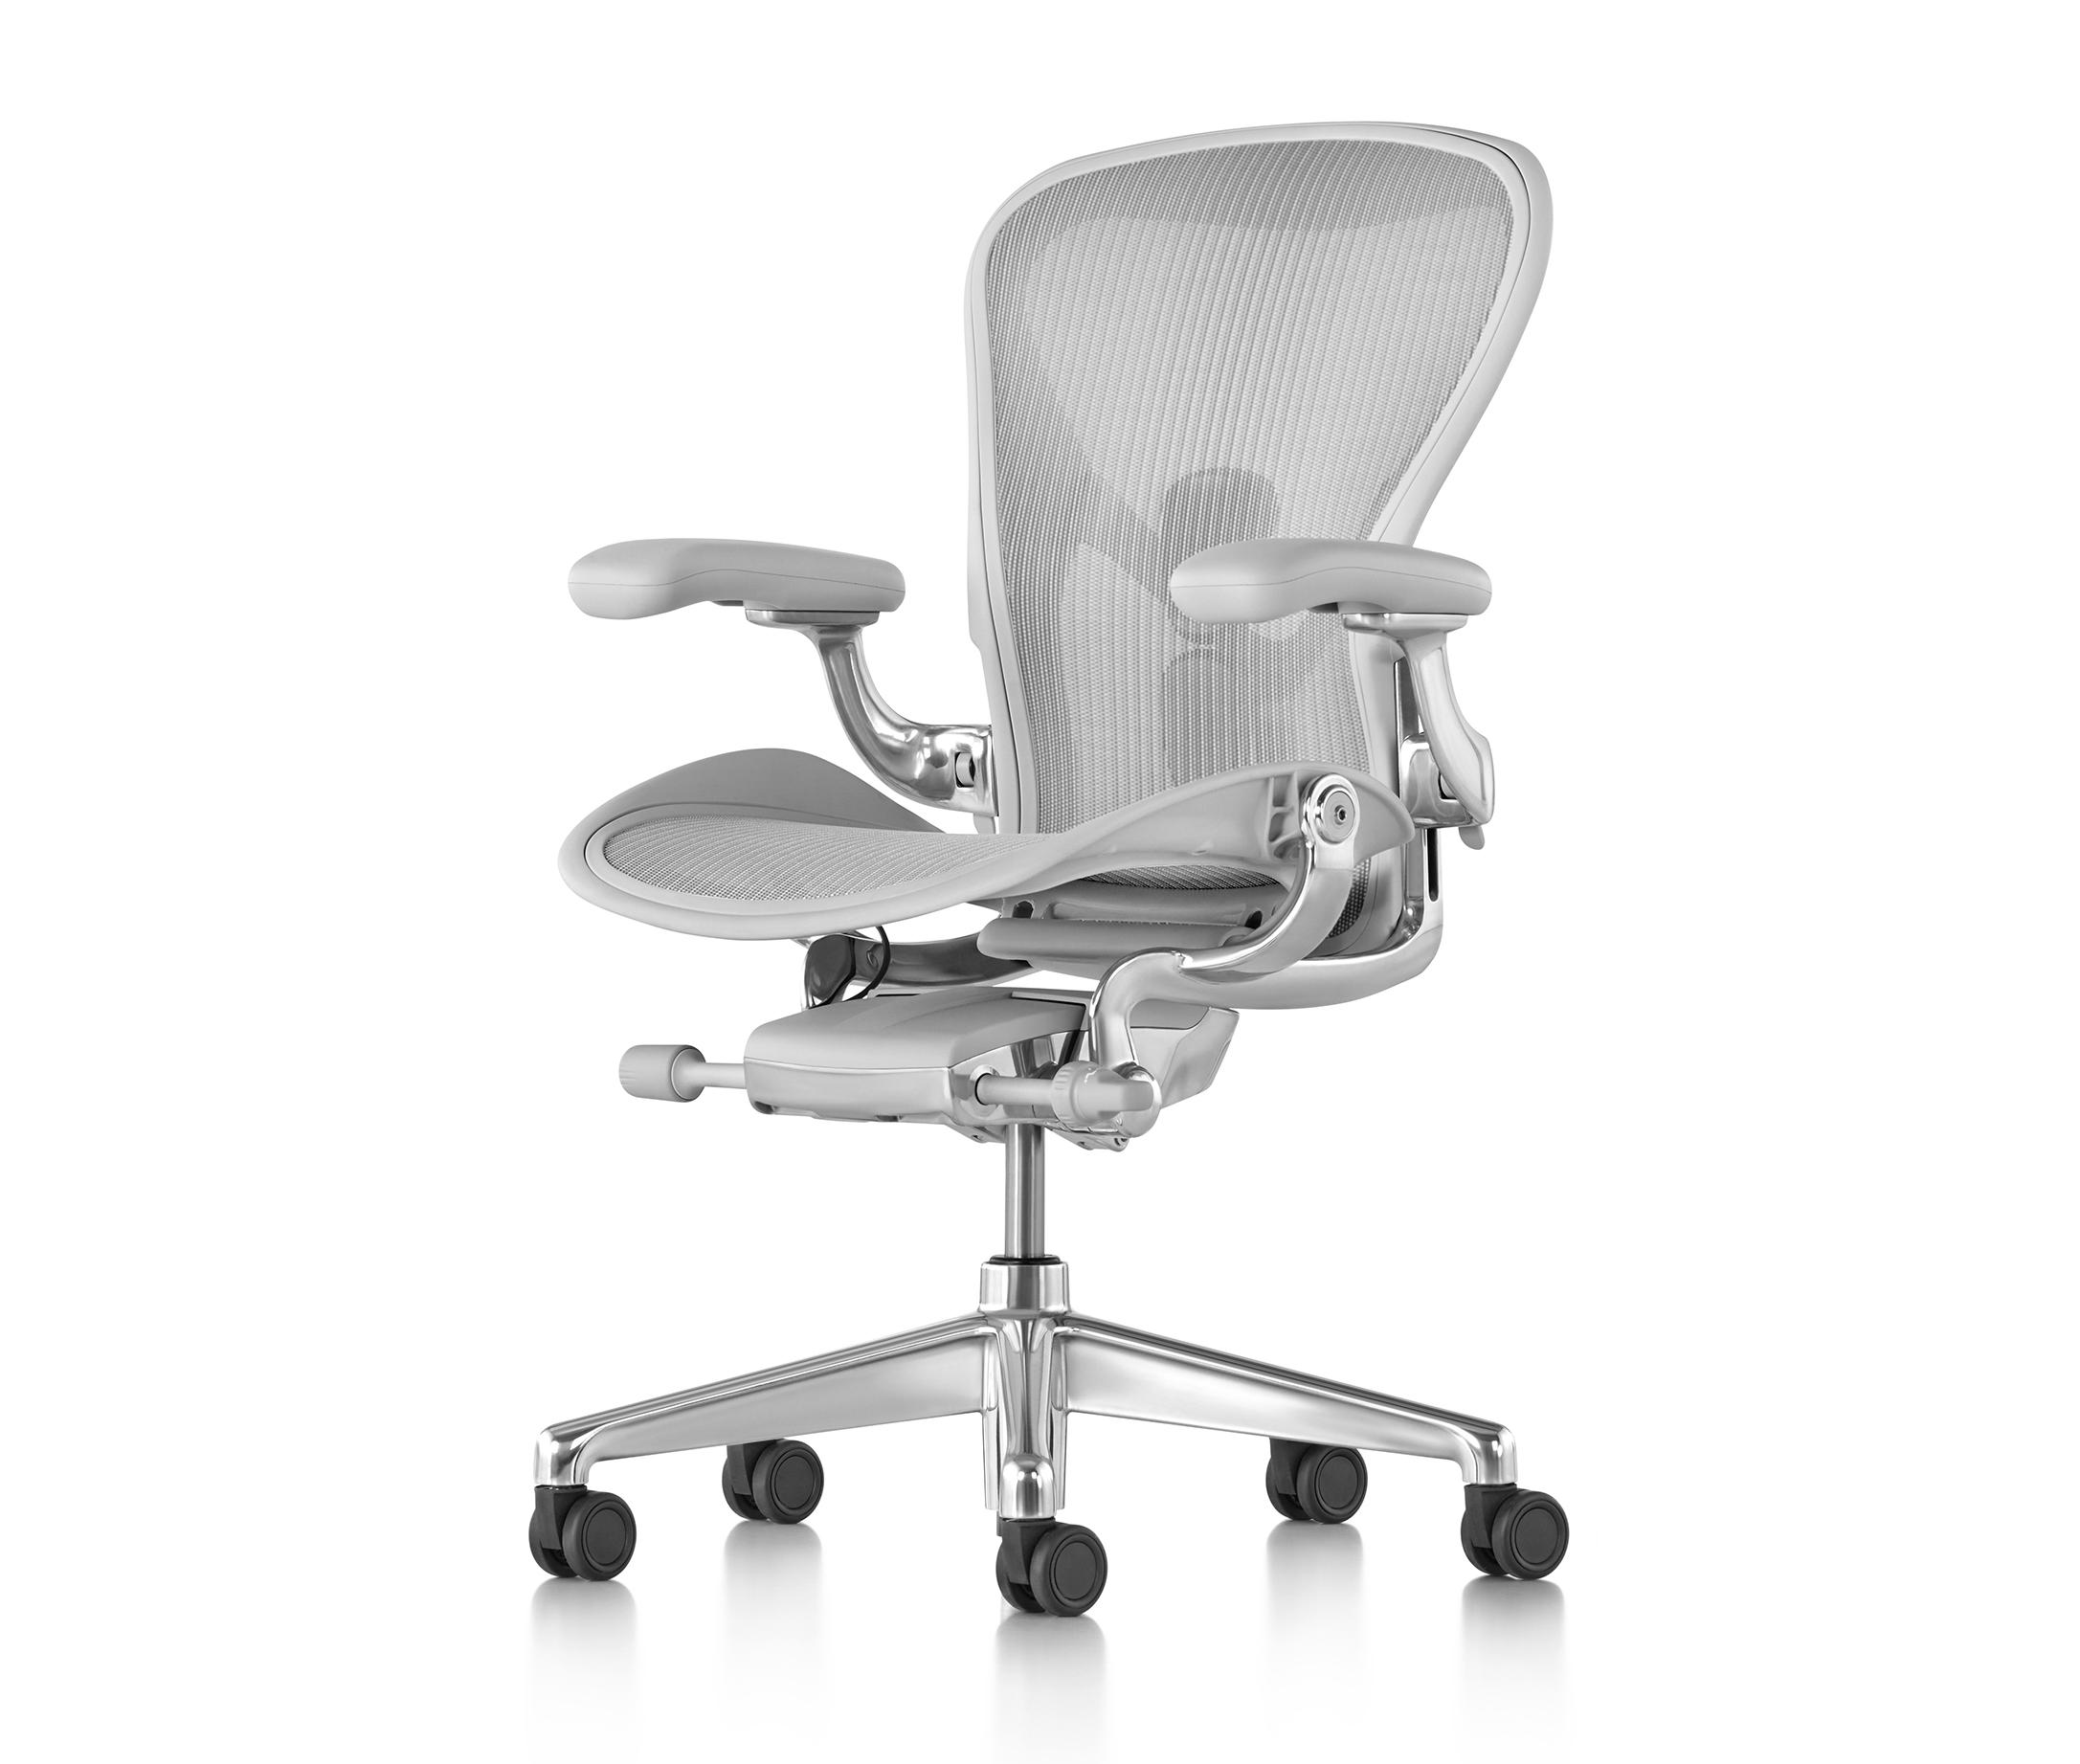 aeron chair by herman miller office chairs - Herman Miller Aeron Chair